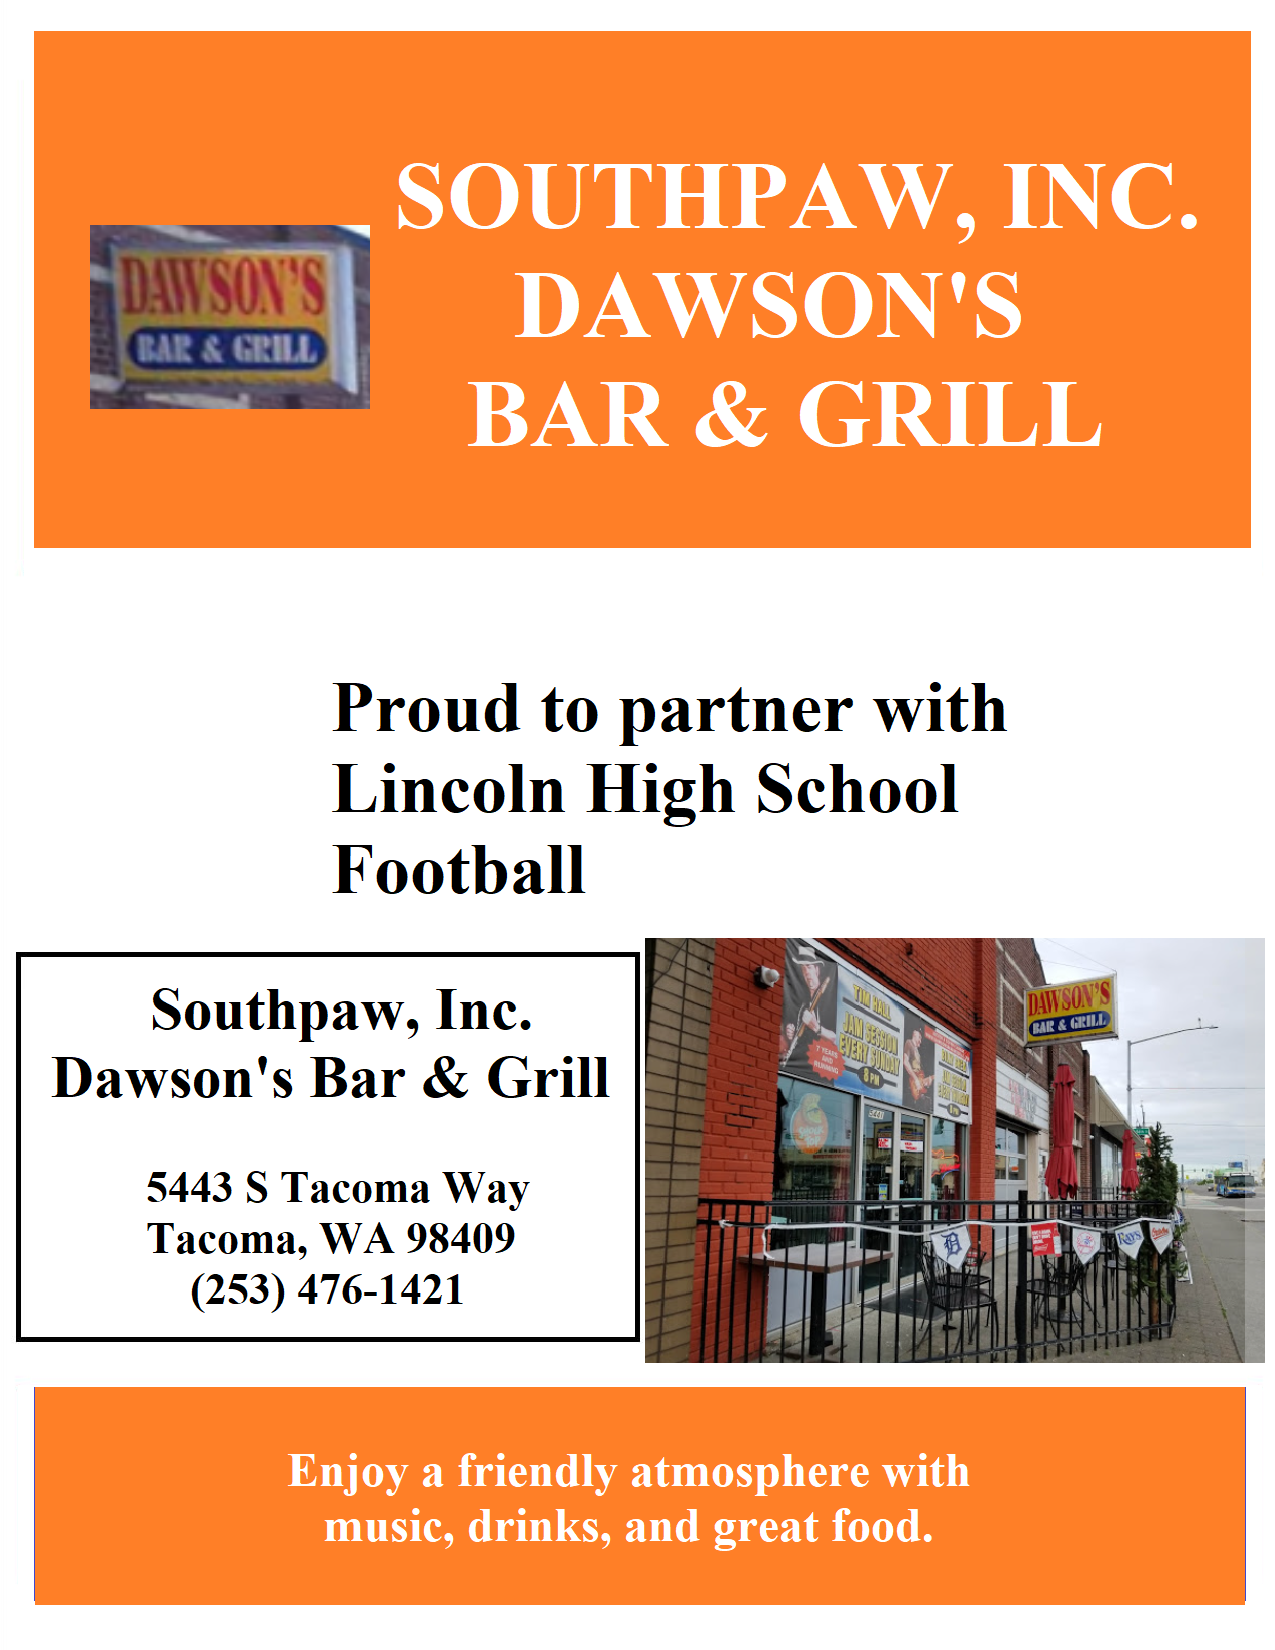 Southpaw, Inc. Dawson's Bar & Grill